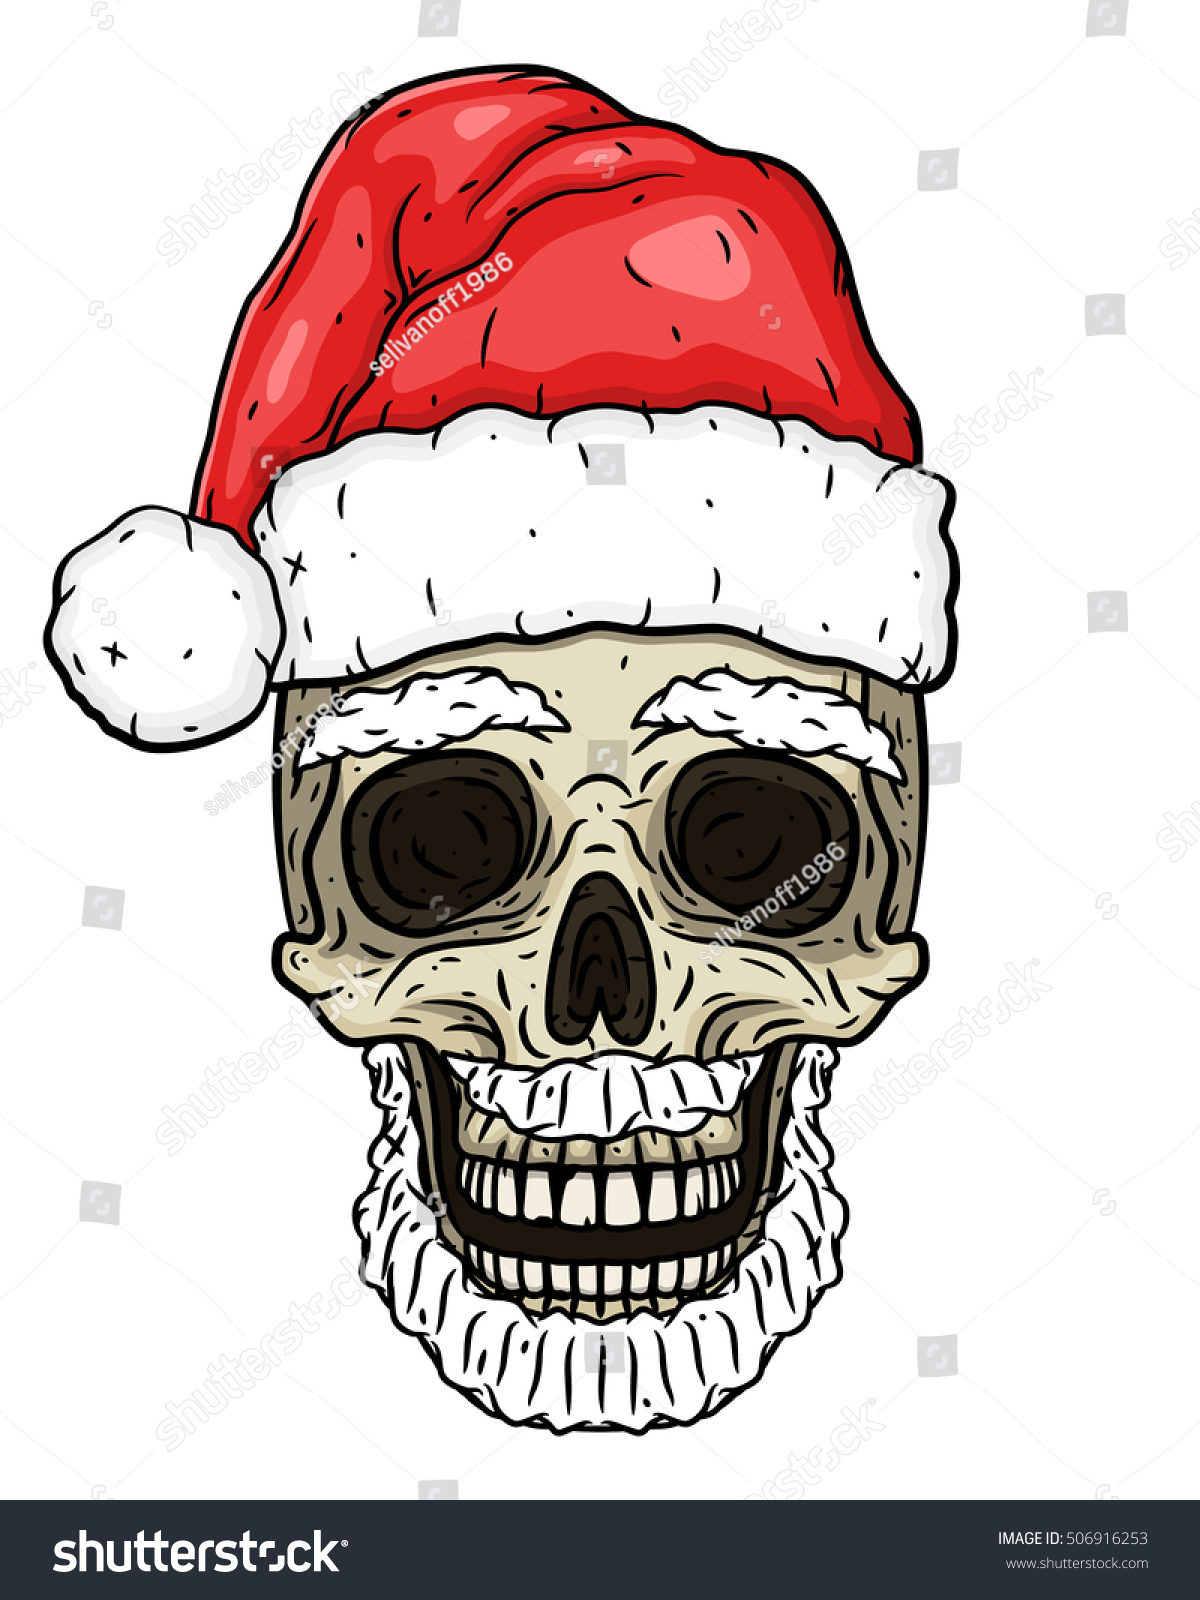 Santa Claus skull Cartoon skull